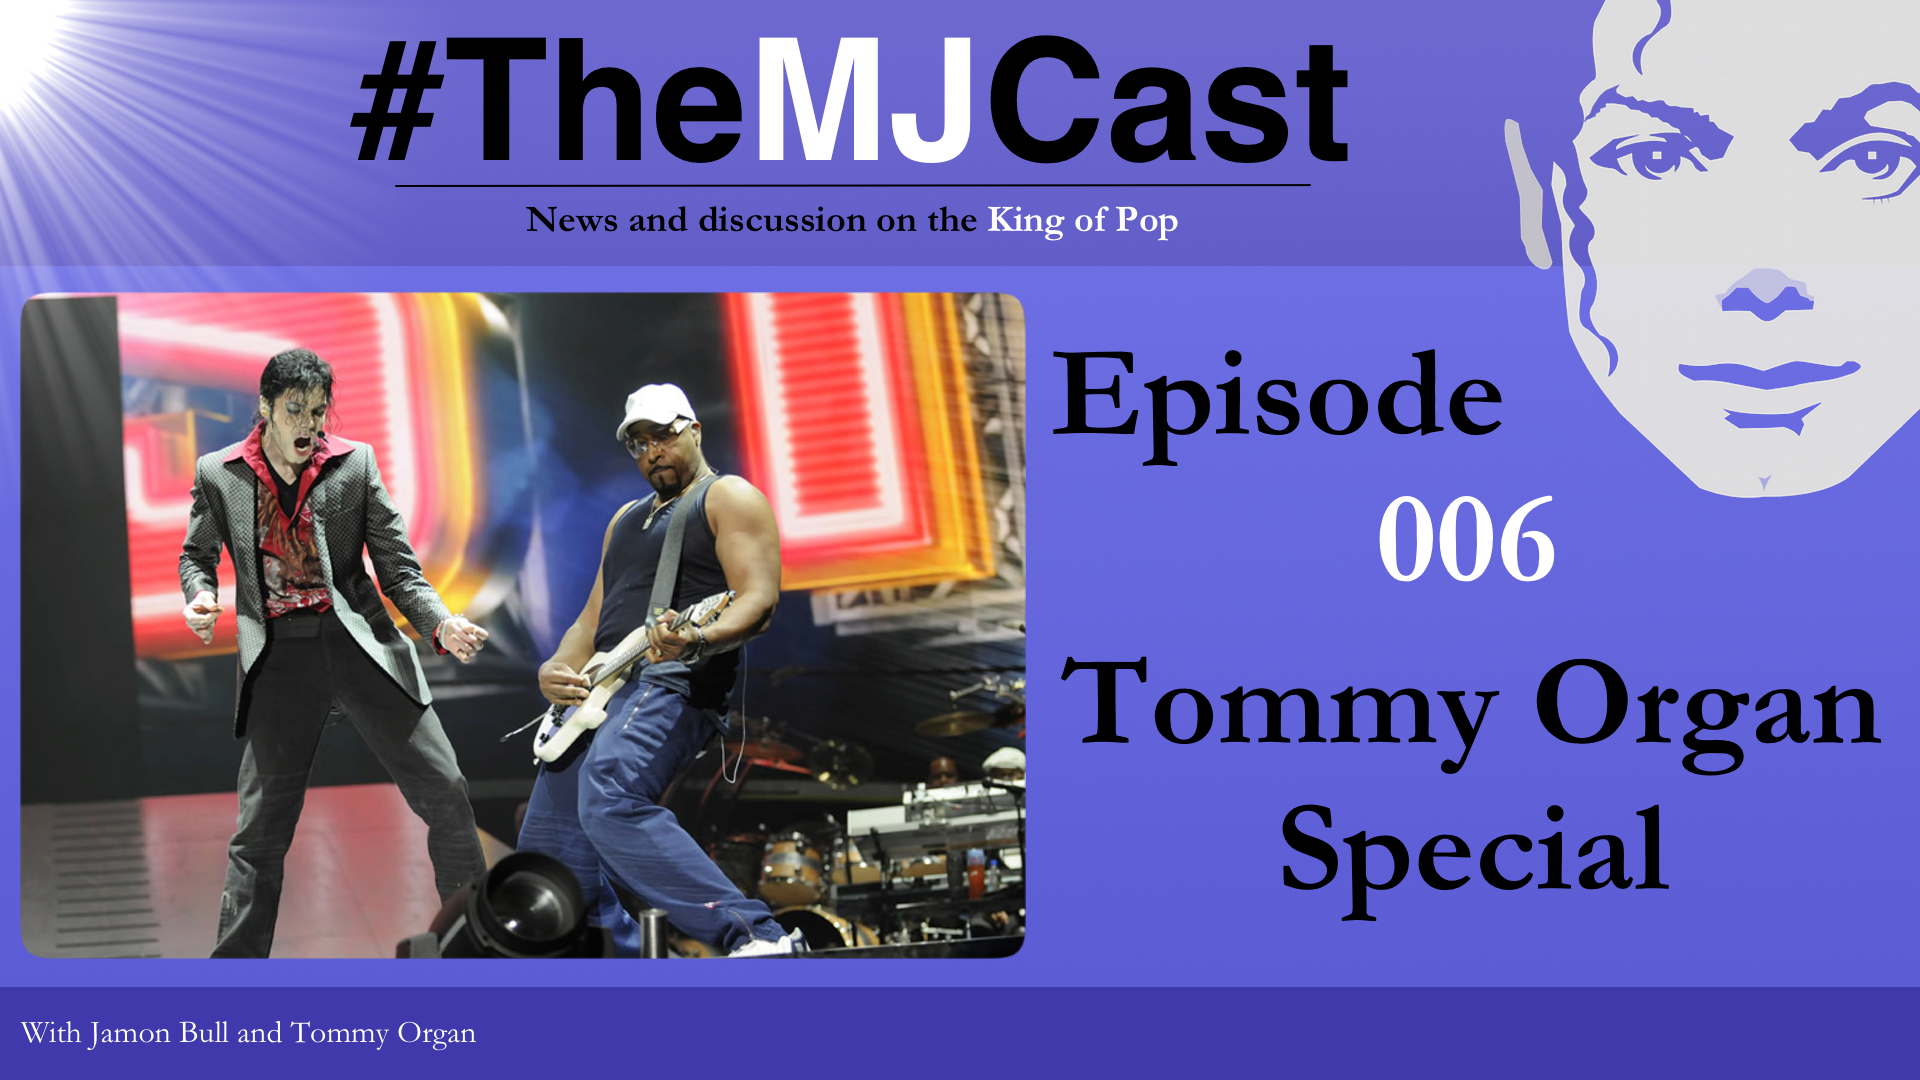 Episode 006 - Tommy Organ Special YouTube Art